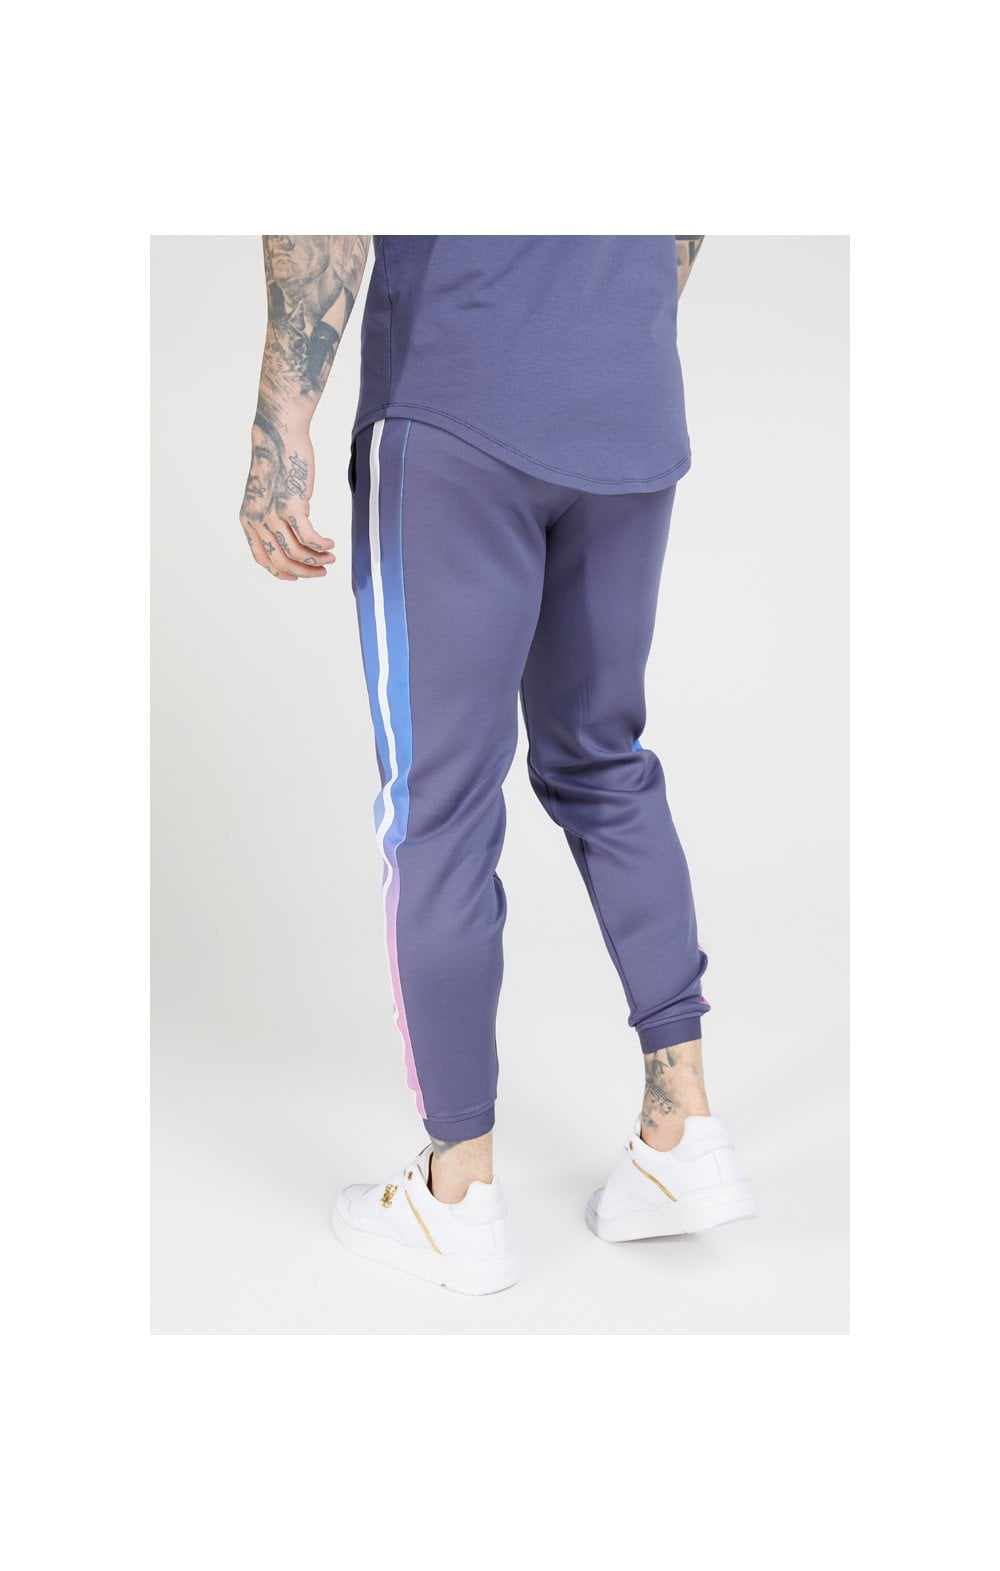 SikSilk Fitted Fade Cuffed Pants – Tri-Neon Fade (2)